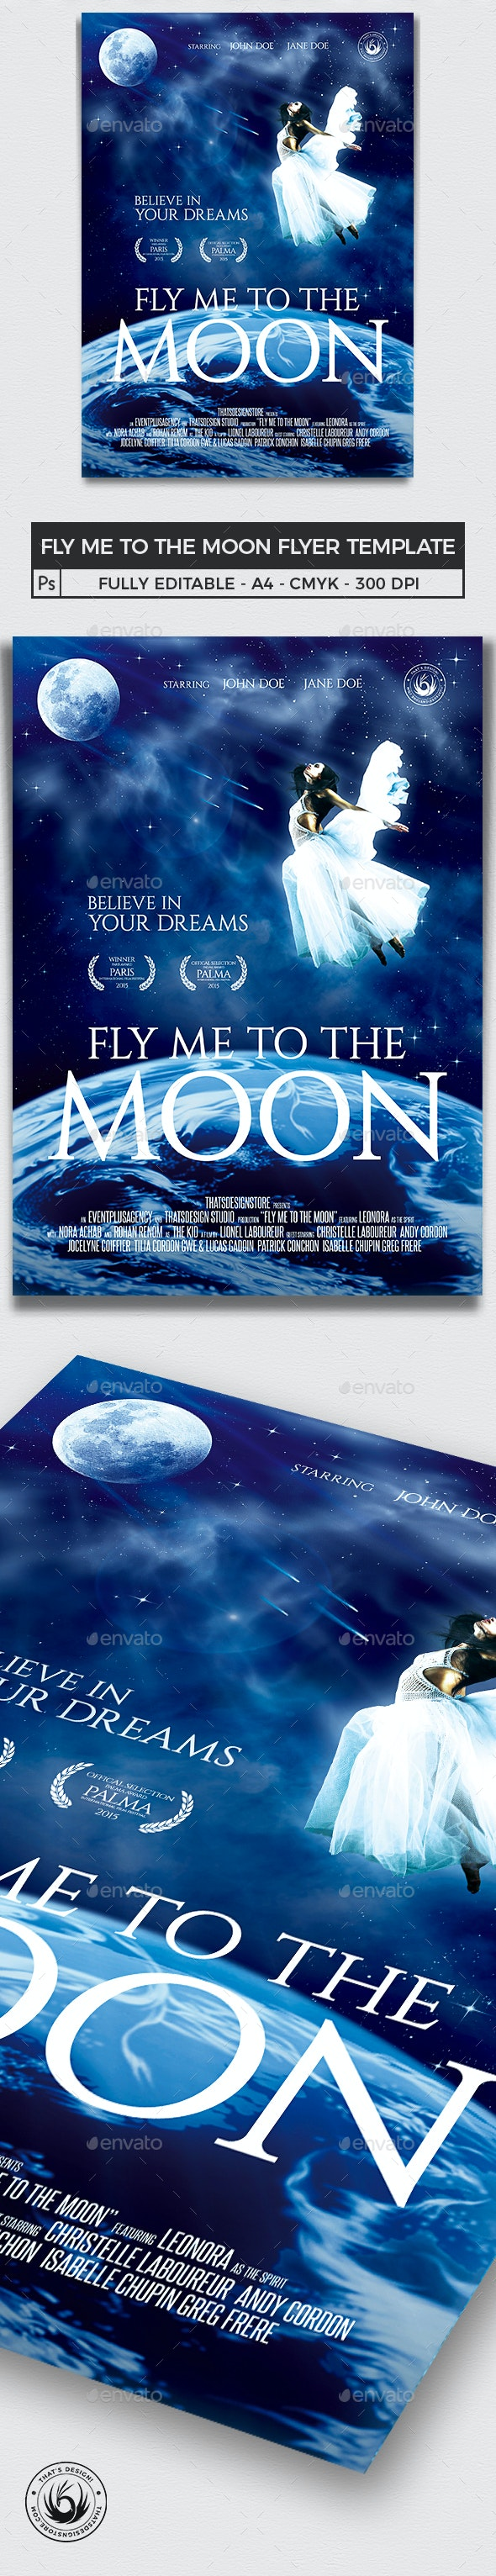 Fly Me to the Moon Movie Poster Template - Miscellaneous Events